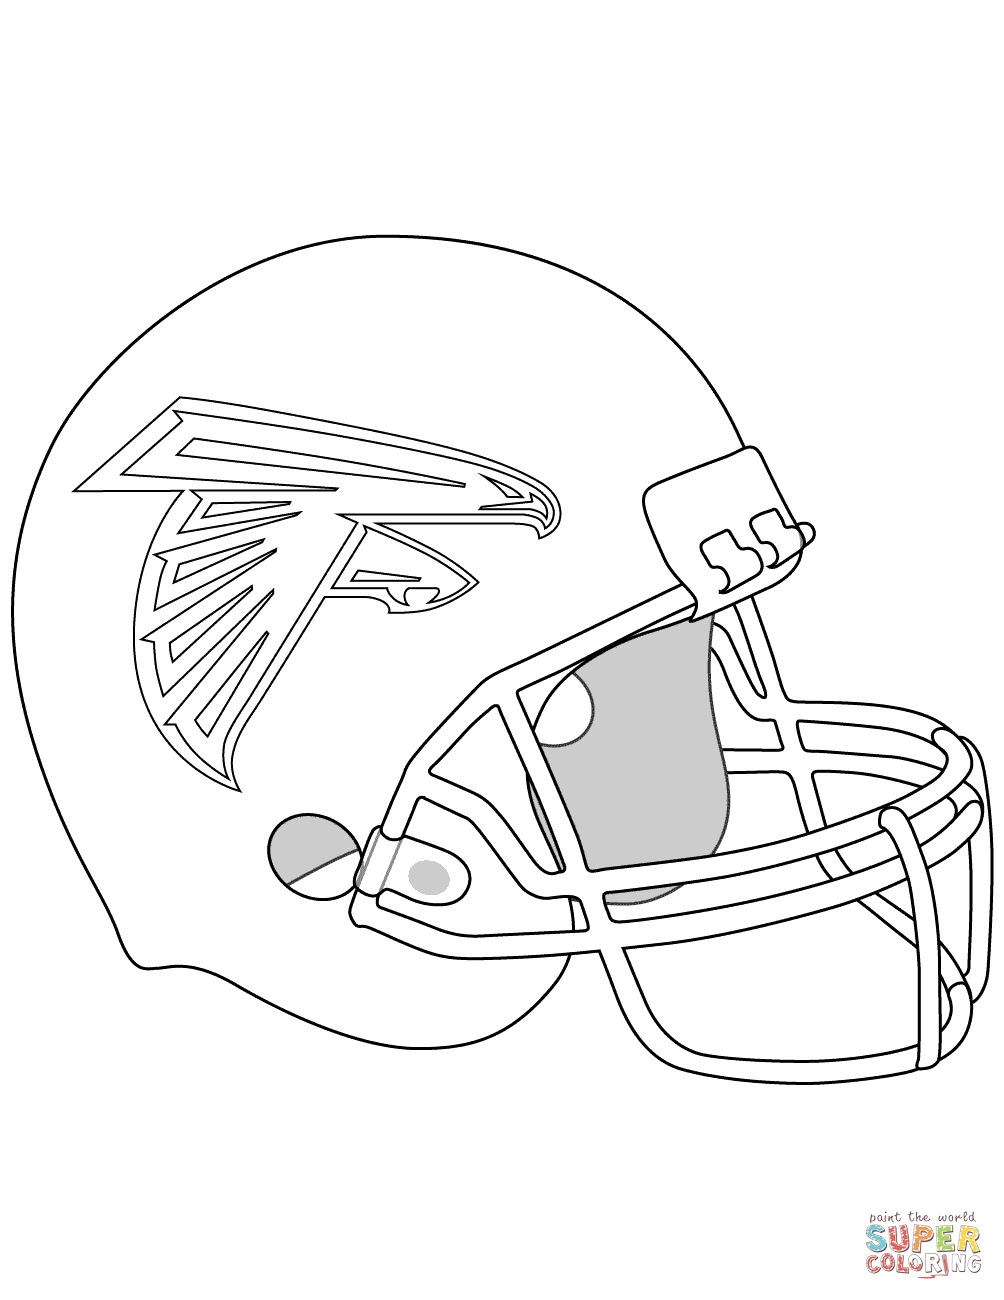 1004x1300 Free Super Bowl Coloring Pages Page With To Improve Imagination